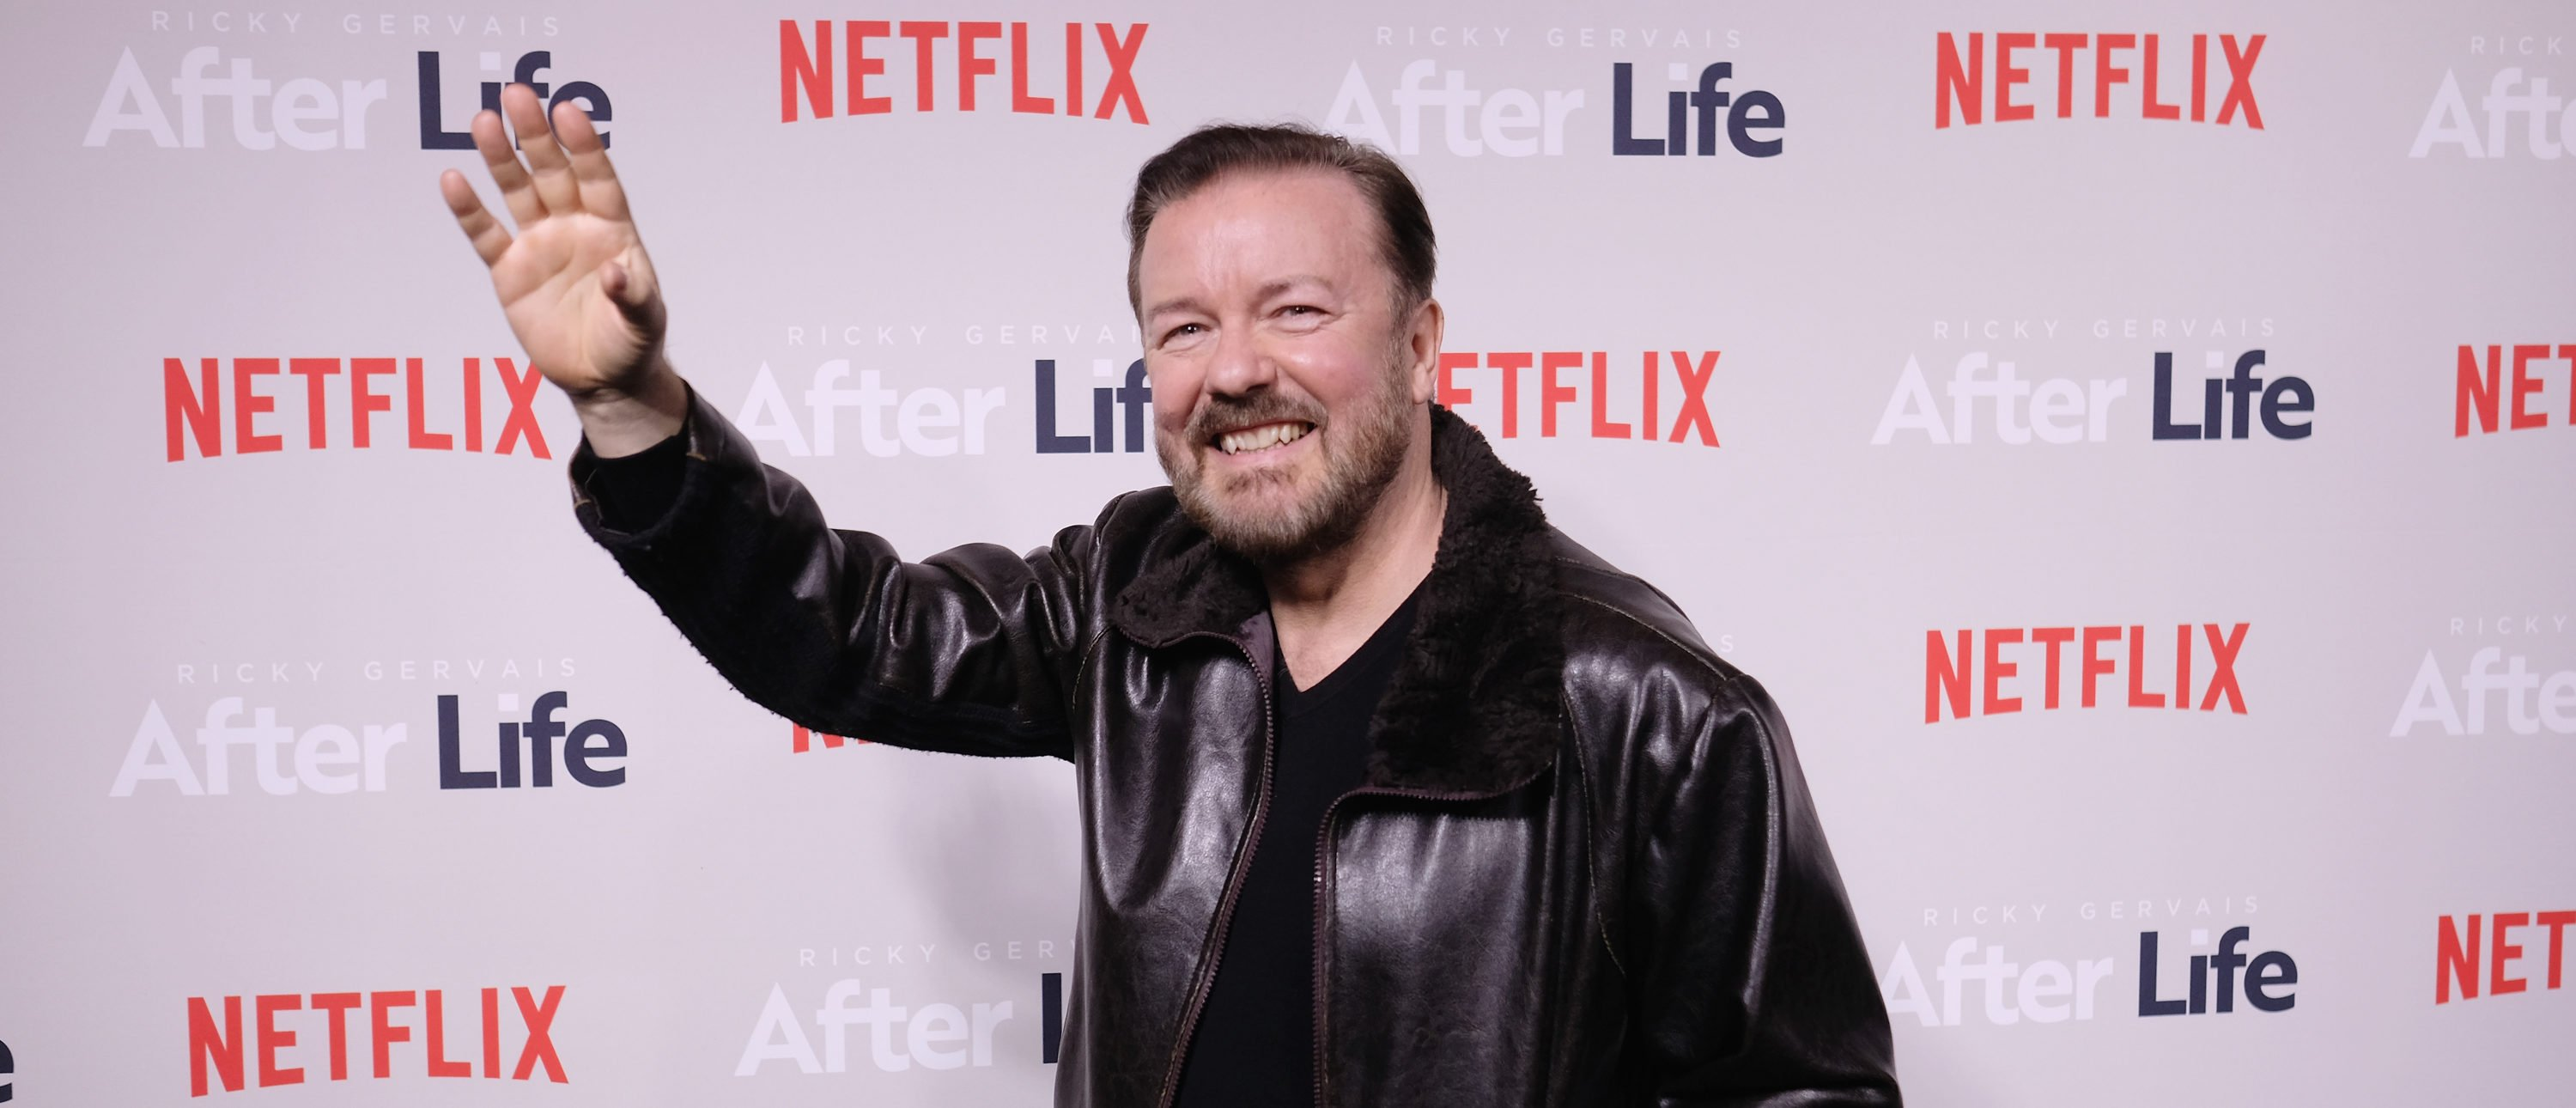 Ricky Gervais Says 'Outrage Mobs' Would Have Prevented 'The Office' If Produced Today